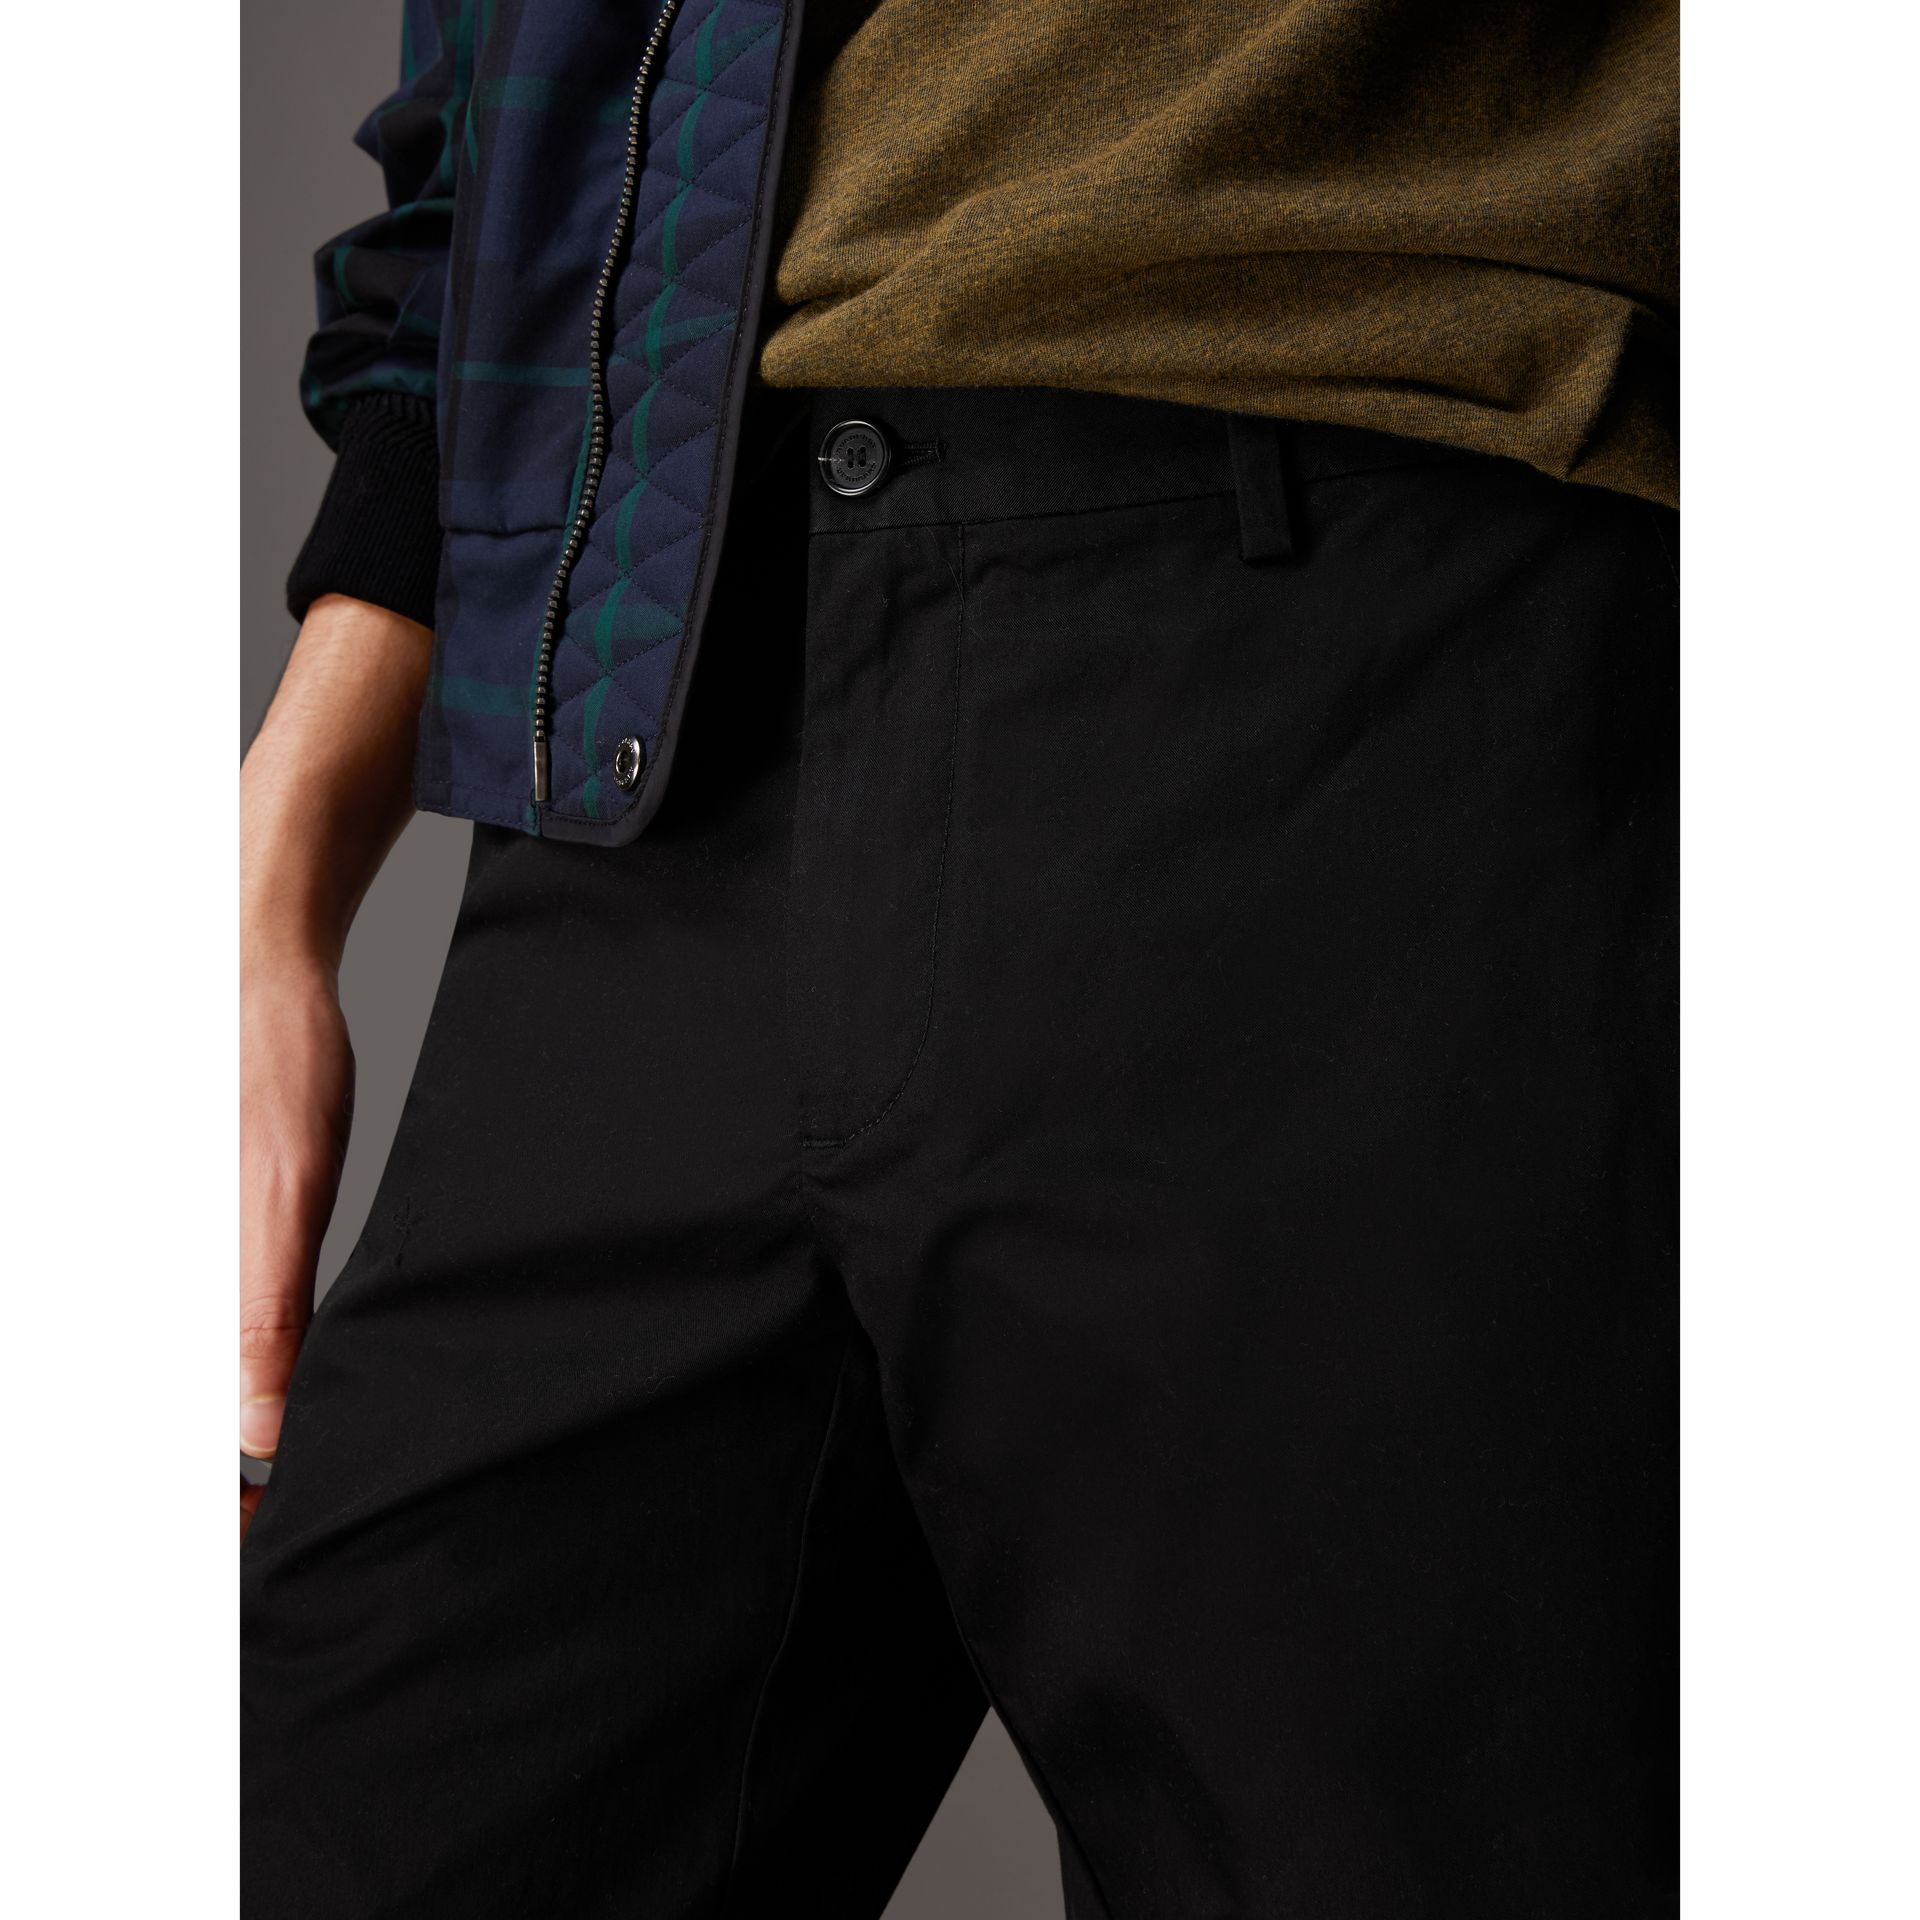 Pantalon chino slim en coton (Noir) - Homme | Burberry - photo de la galerie 1